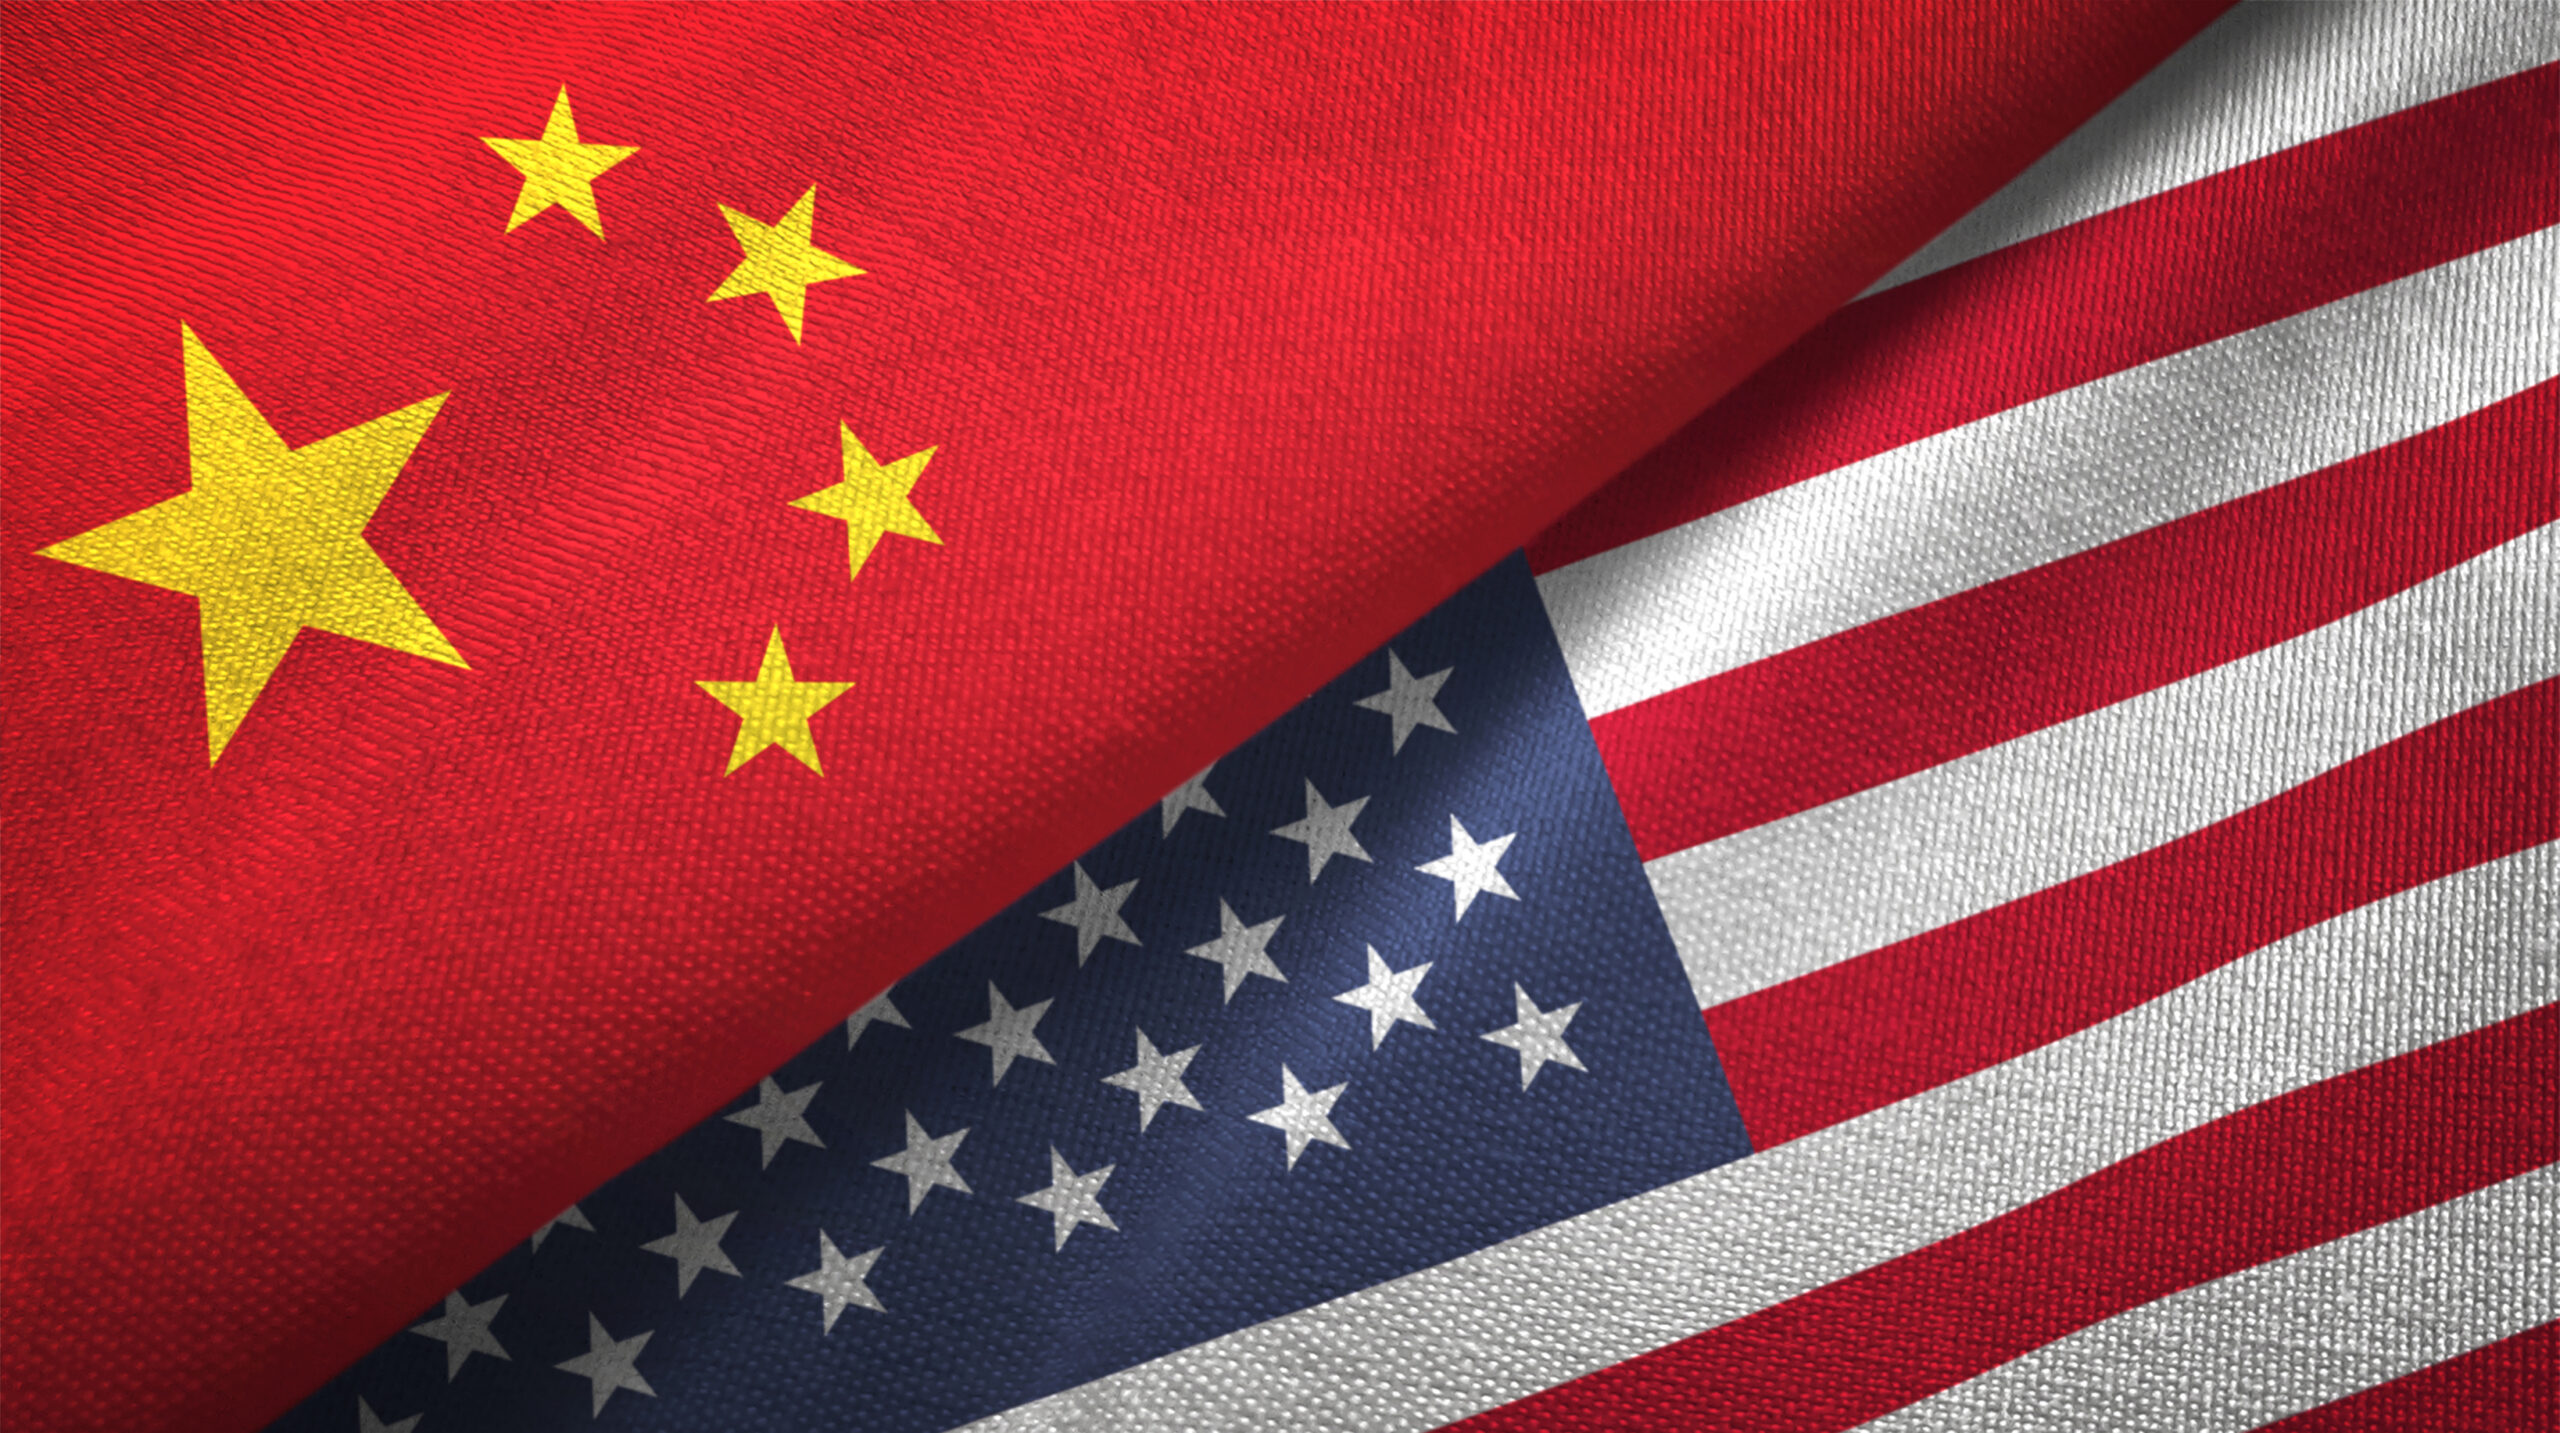 United States and China flags together. Image credit: iStock